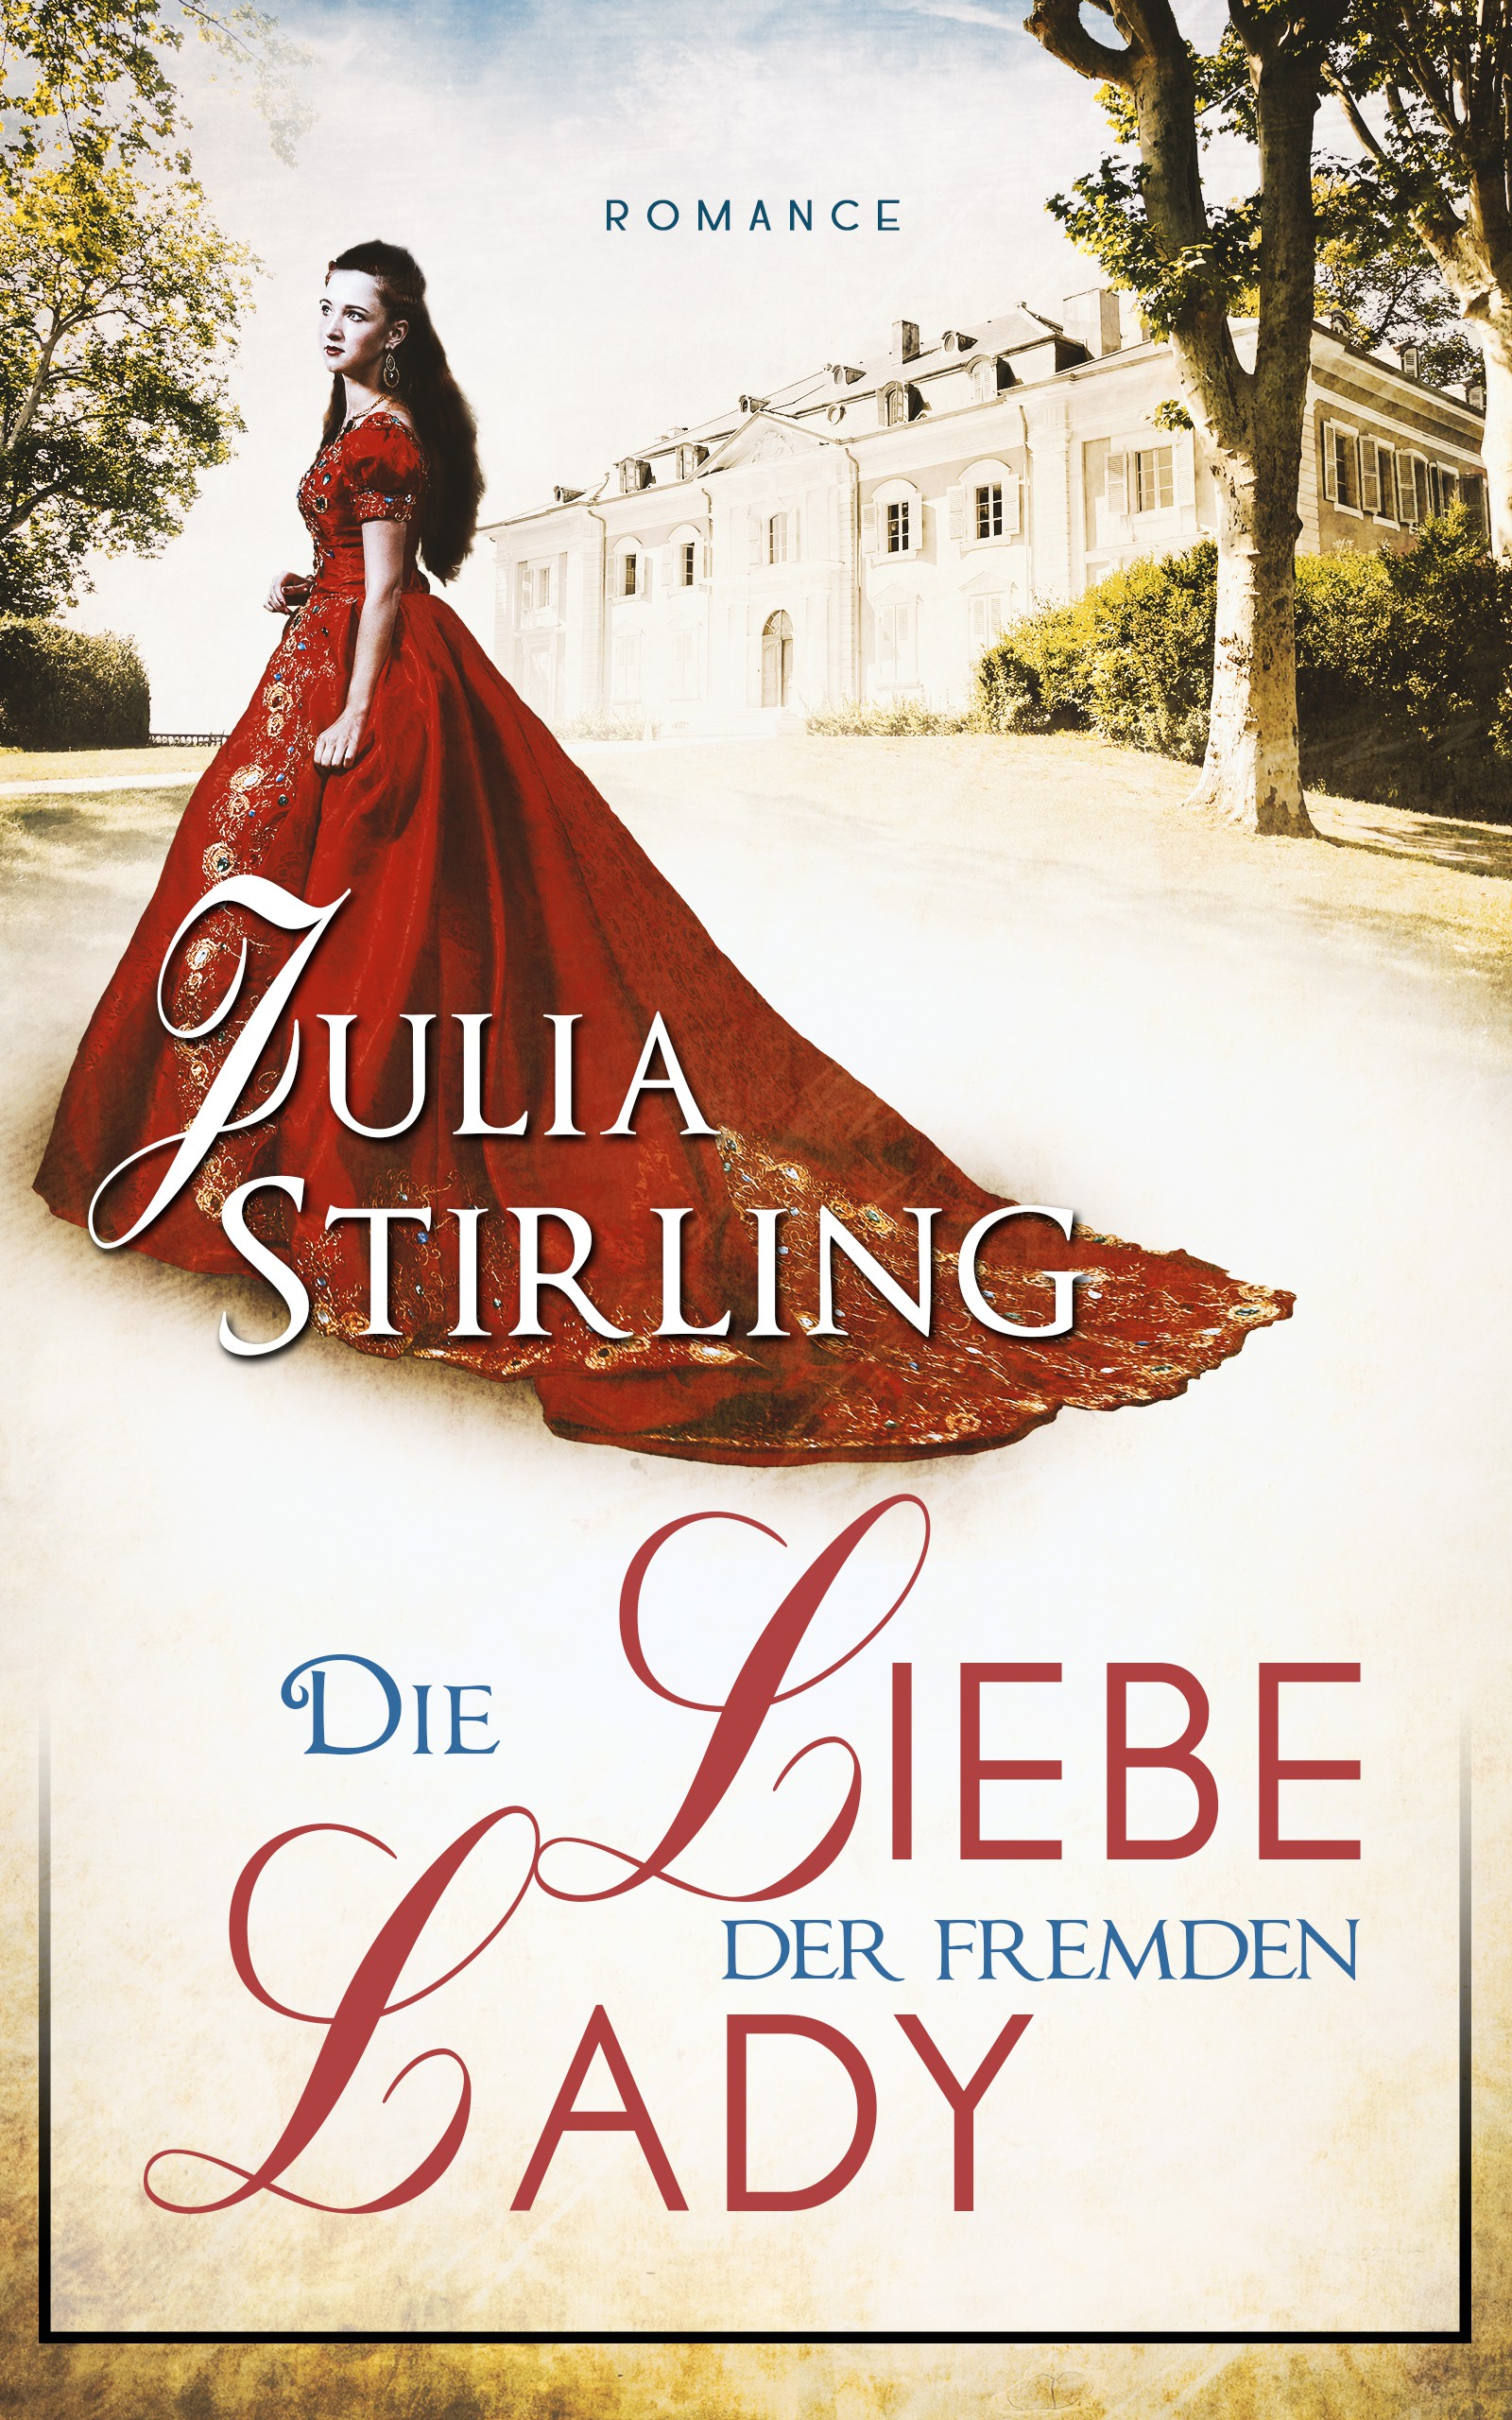 Romantic but classy: Cover for historical romance set at the exiled English court in France in 1689